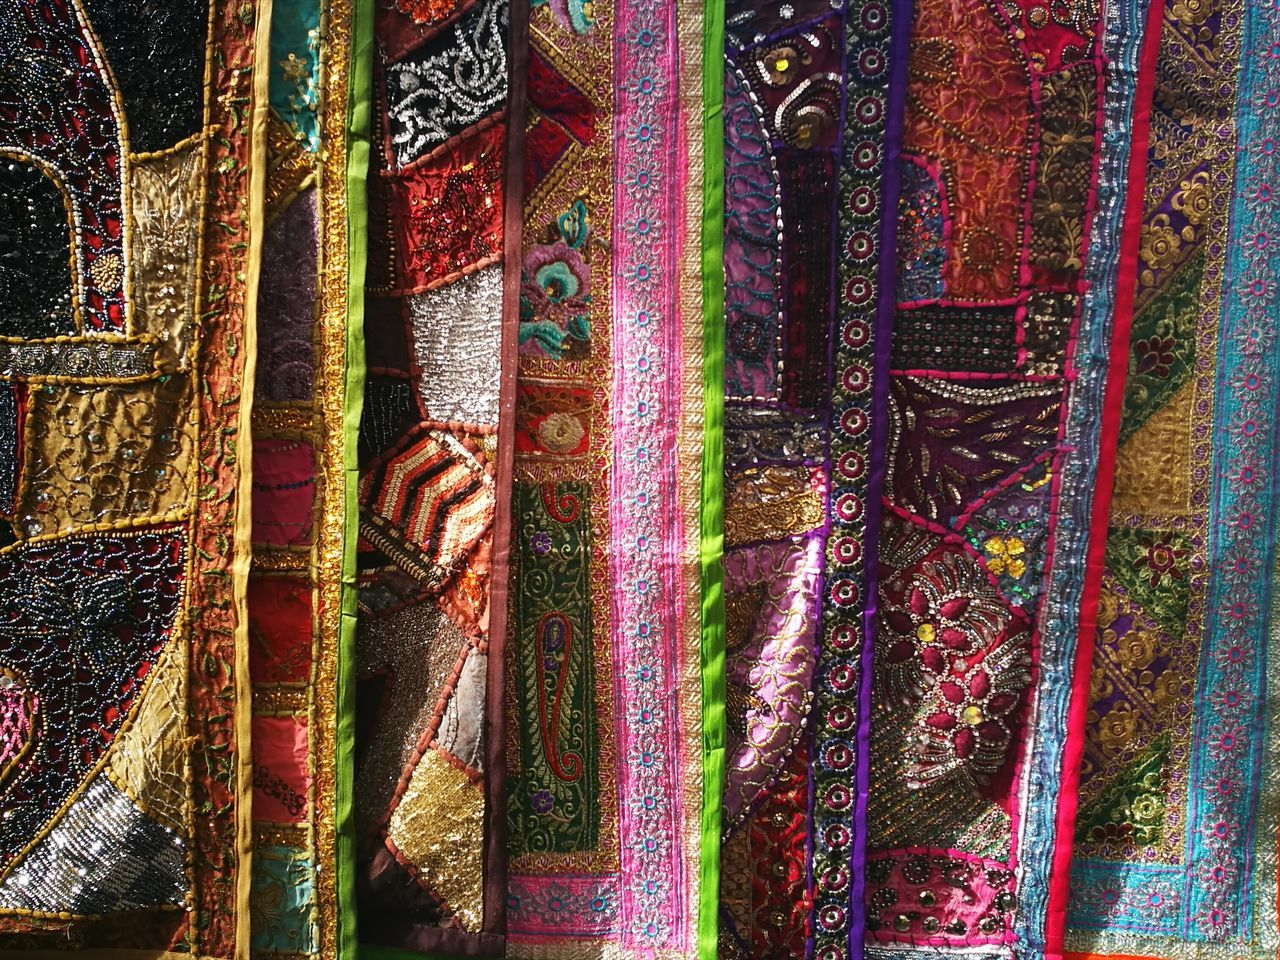 Carpets Carpet Art Red Pink Green Purple Yellow Blue All Colors Of The Rainbow Carpet Design Morocco Handcraft <33333 Pink Flower 🌸